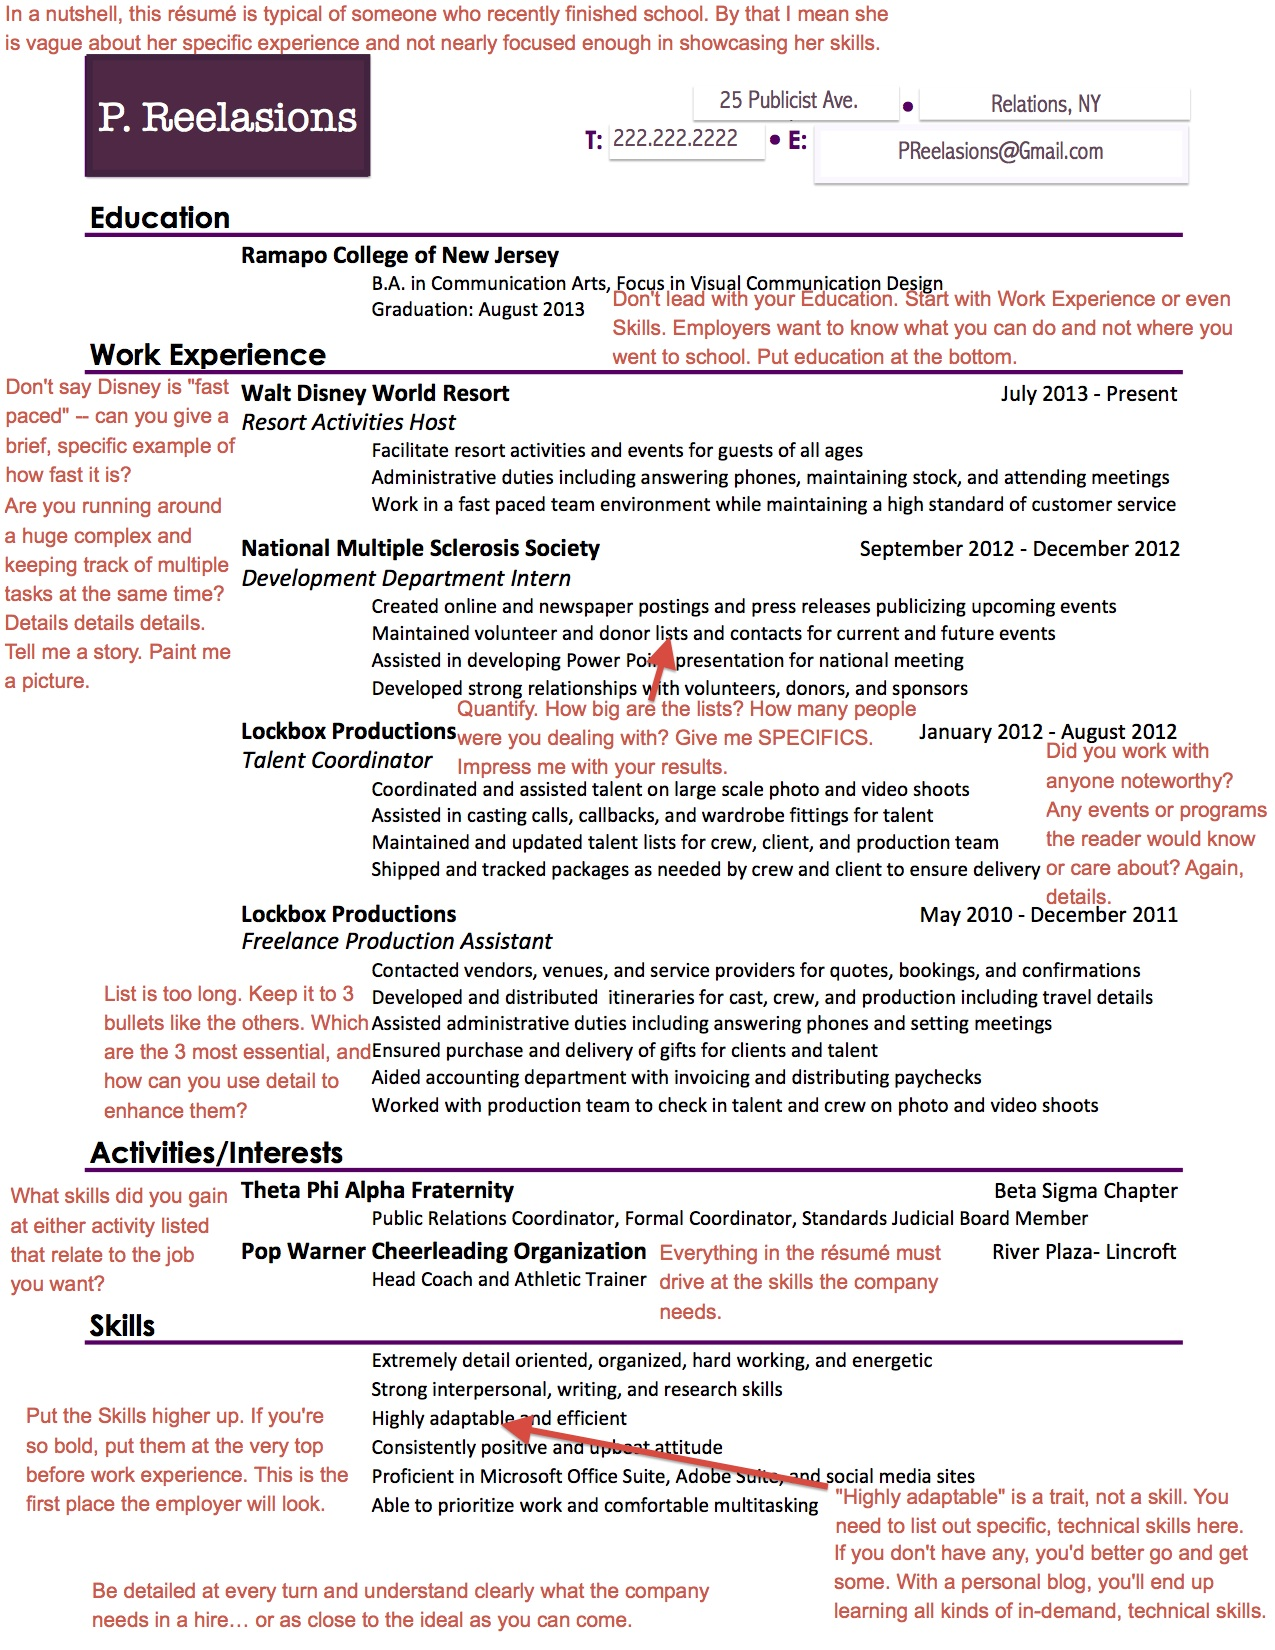 pr manager resume sample. Resume Example. Resume CV Cover Letter